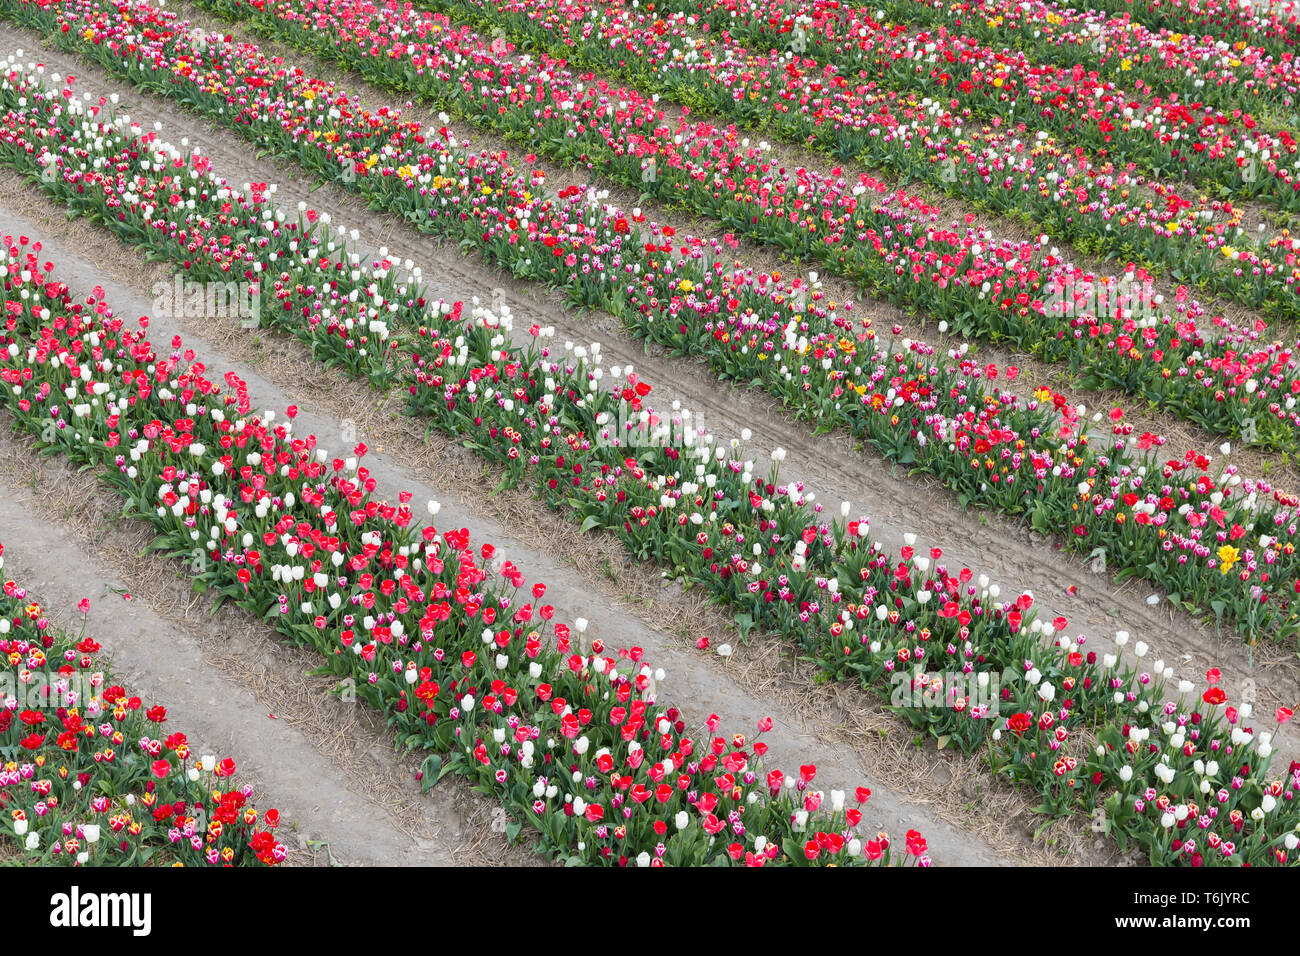 Dutch show garden with lines of varicolored tulips - Stock Image